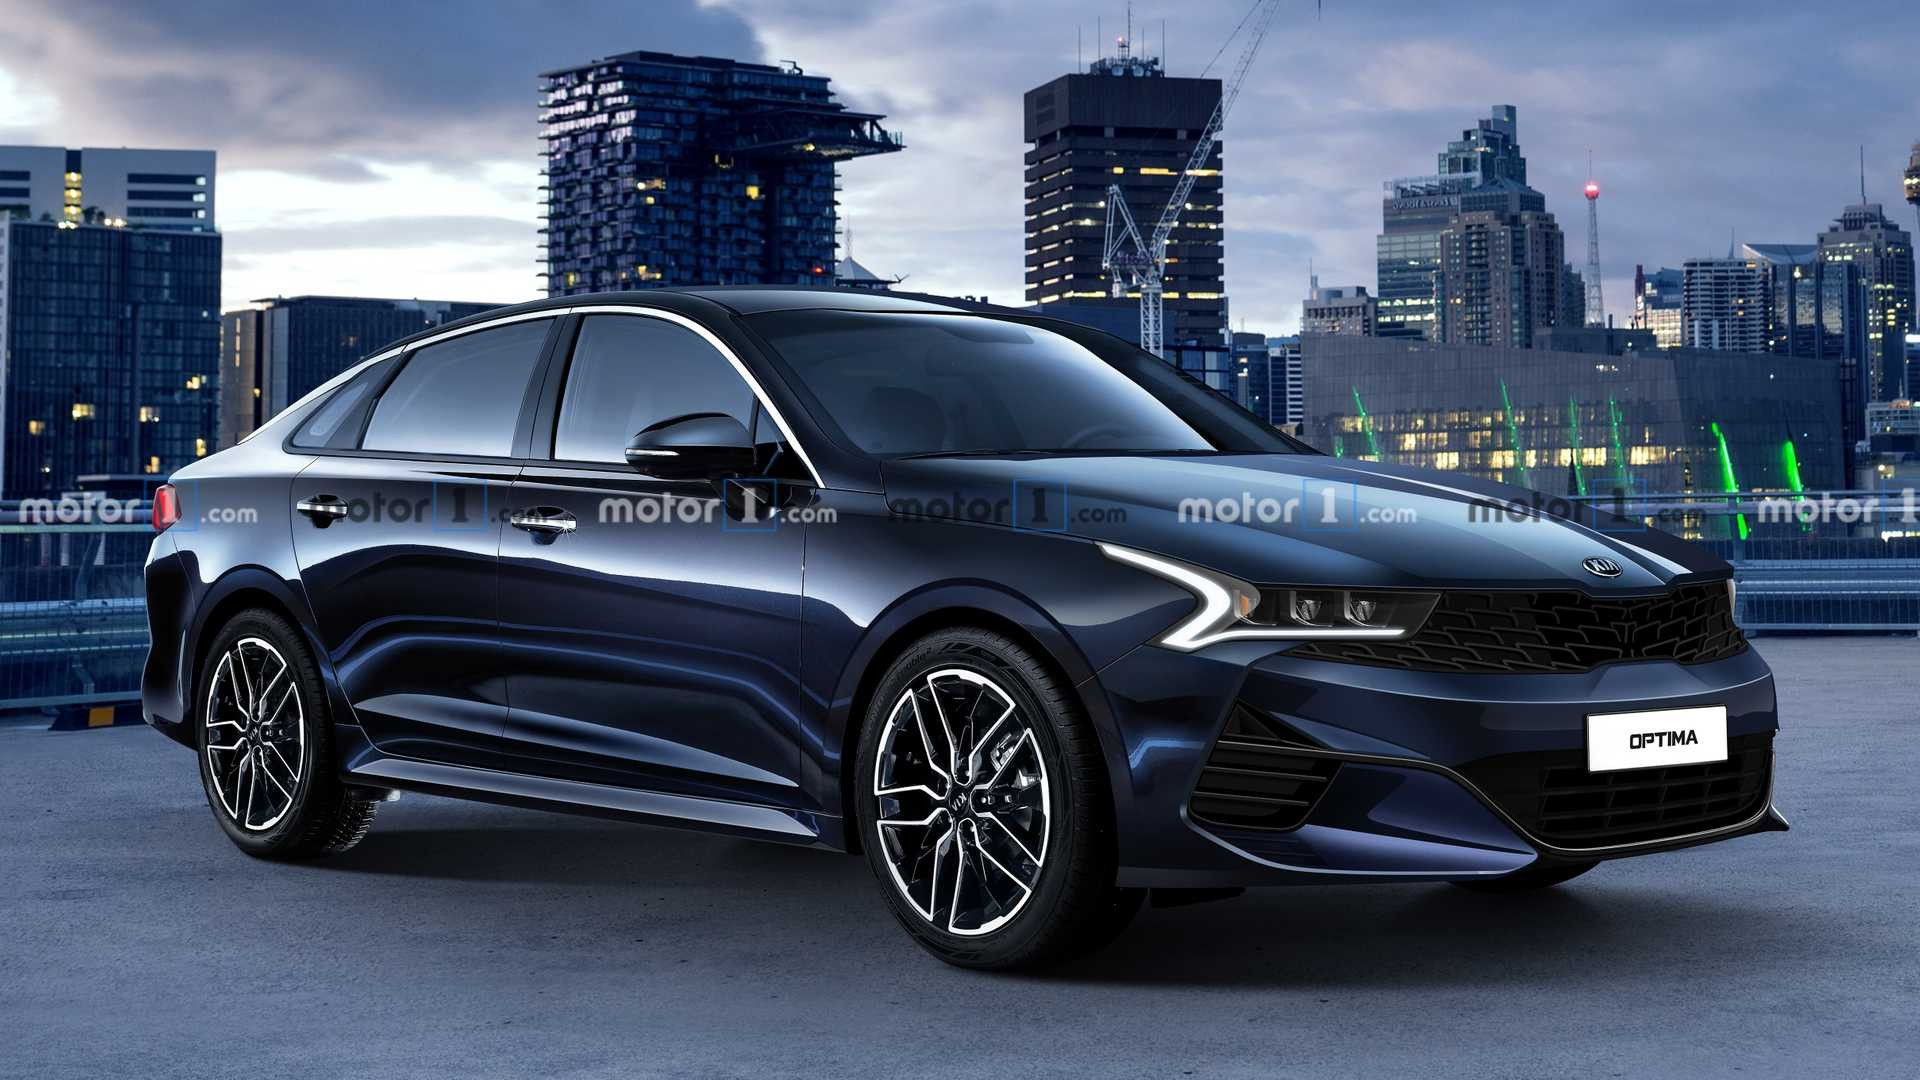 Kia Optima Gt 2020 Exterior for Kia Optima Gt 2020